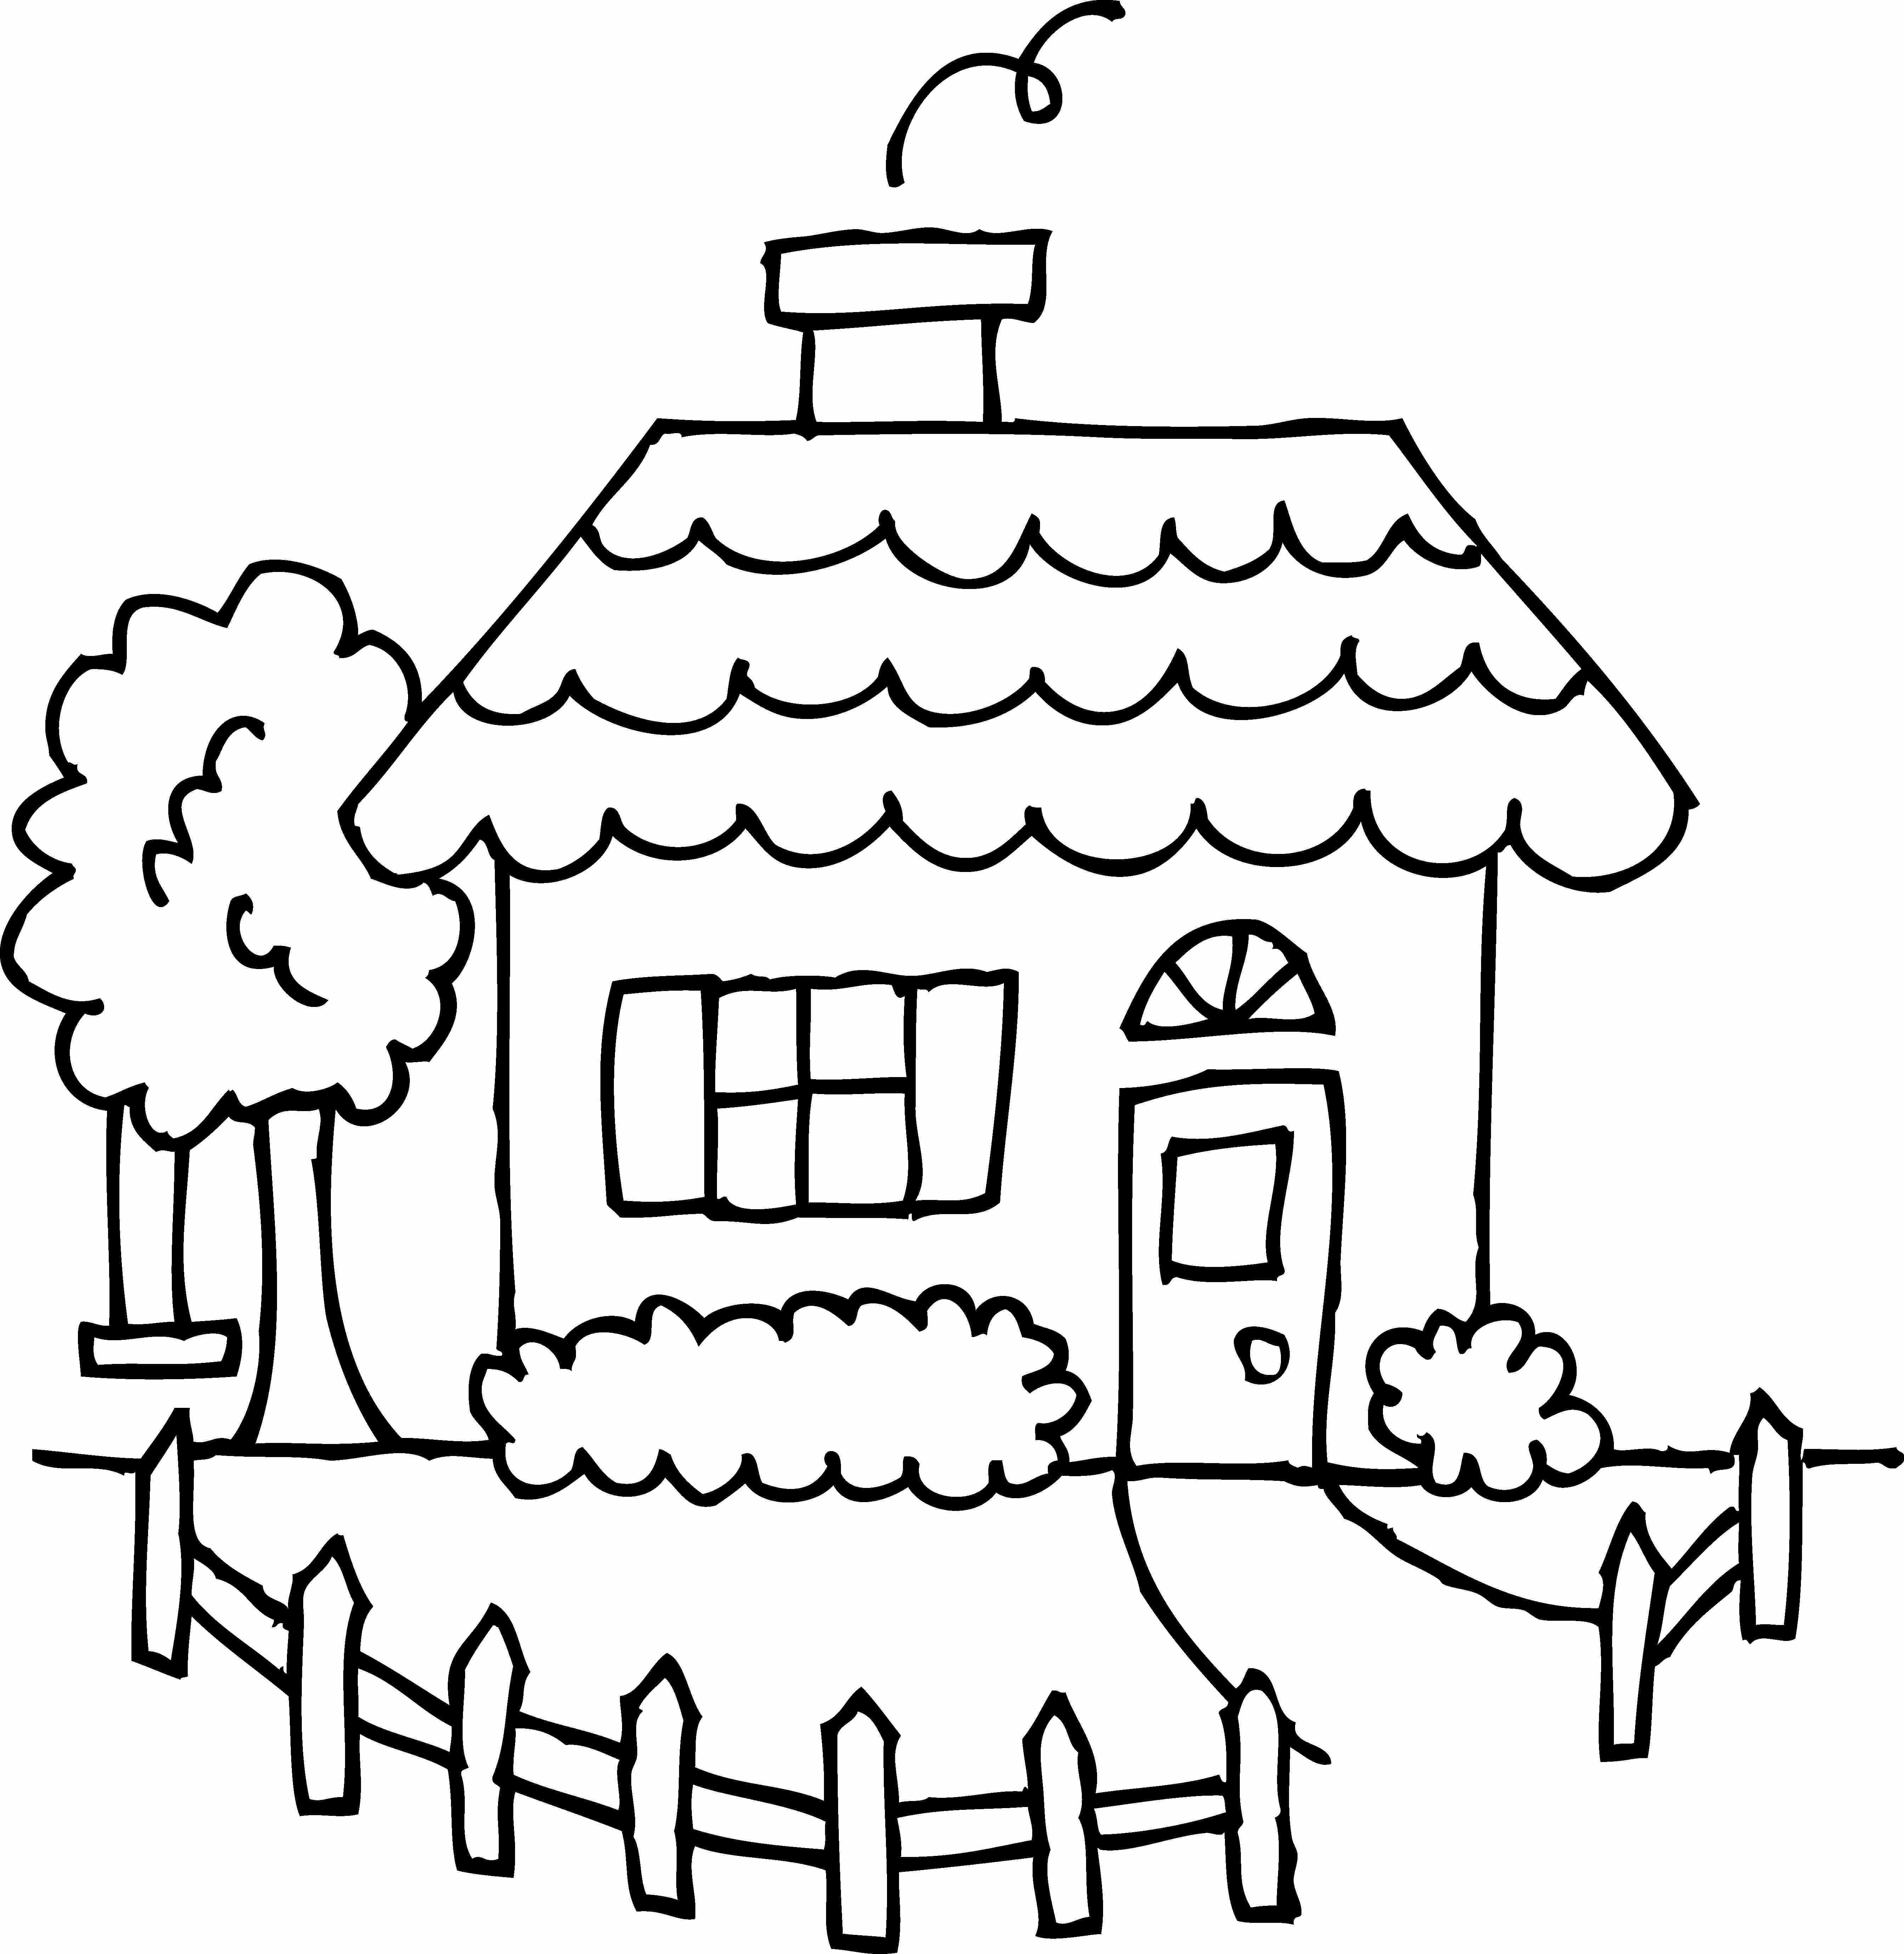 5375x5517 White House Coloring Pages Hellokids Com Inside Page Olegratiy